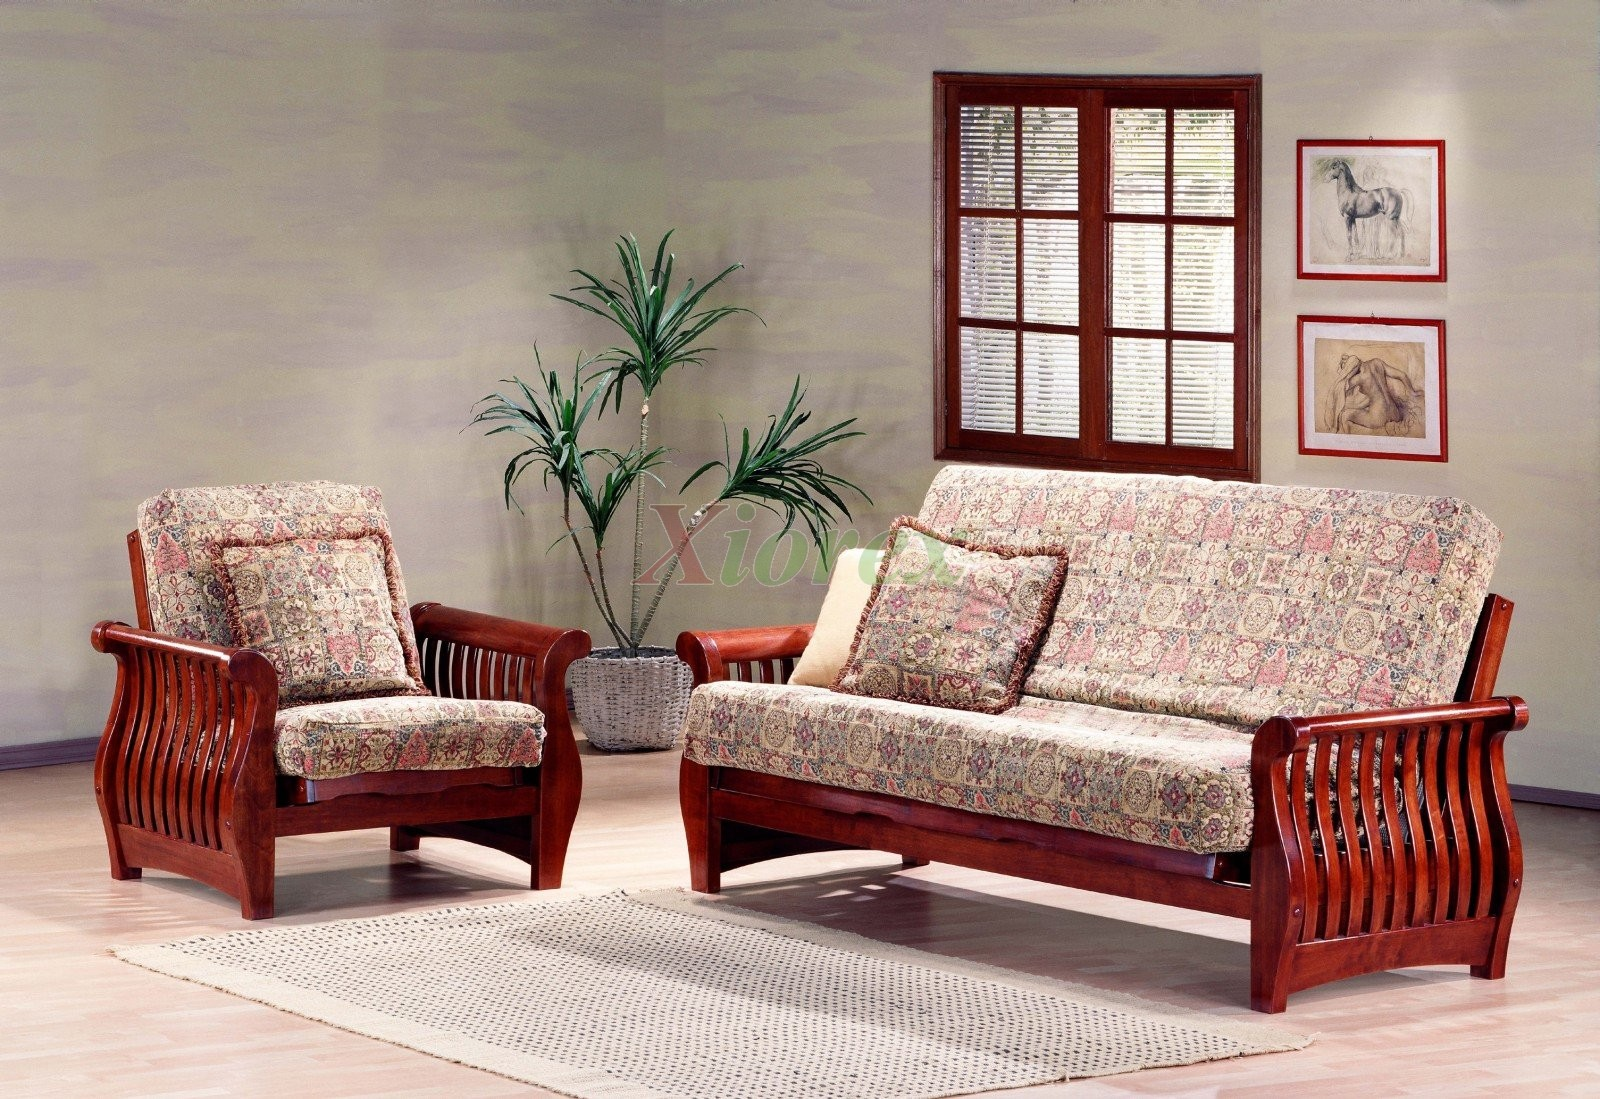 cool futons   big lots futon   walmart futon furniture  u0026 rug  cool futons   big lots futon   walmart futon  rh   marccharlessteakhouse